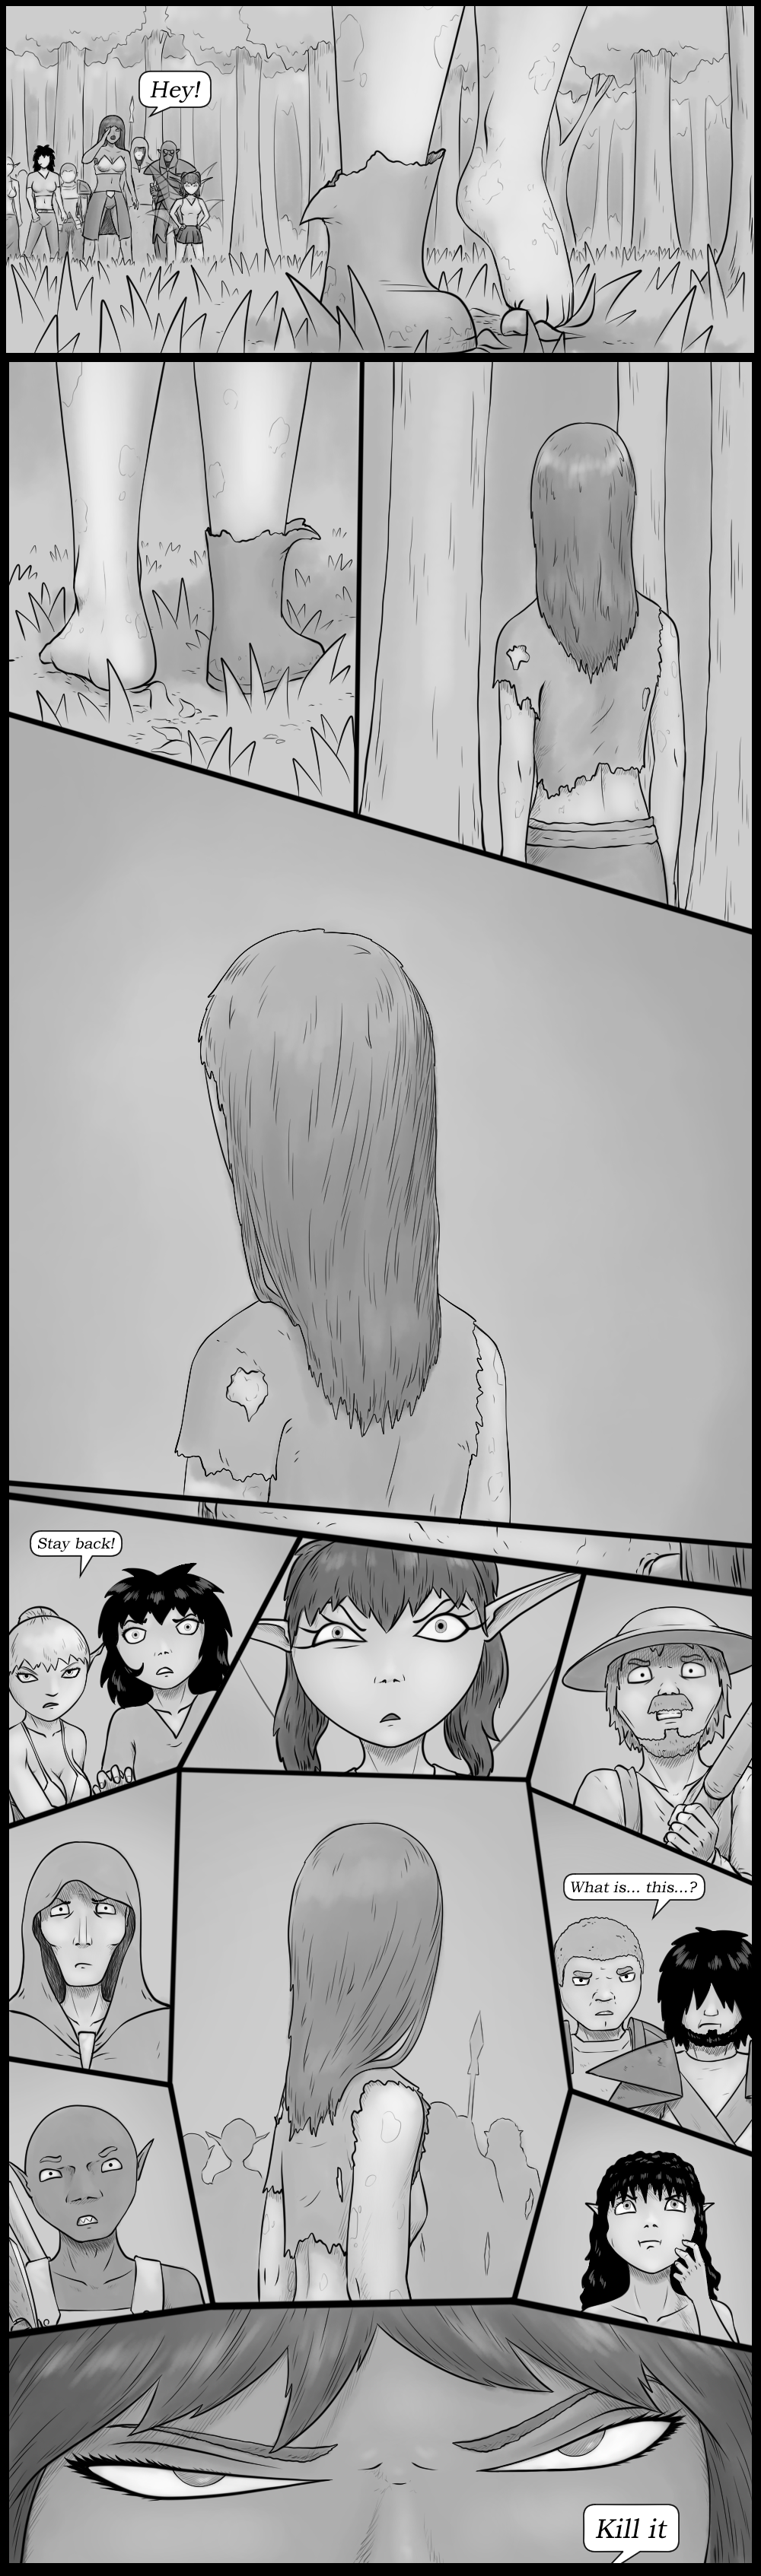 Page 28 - Shock